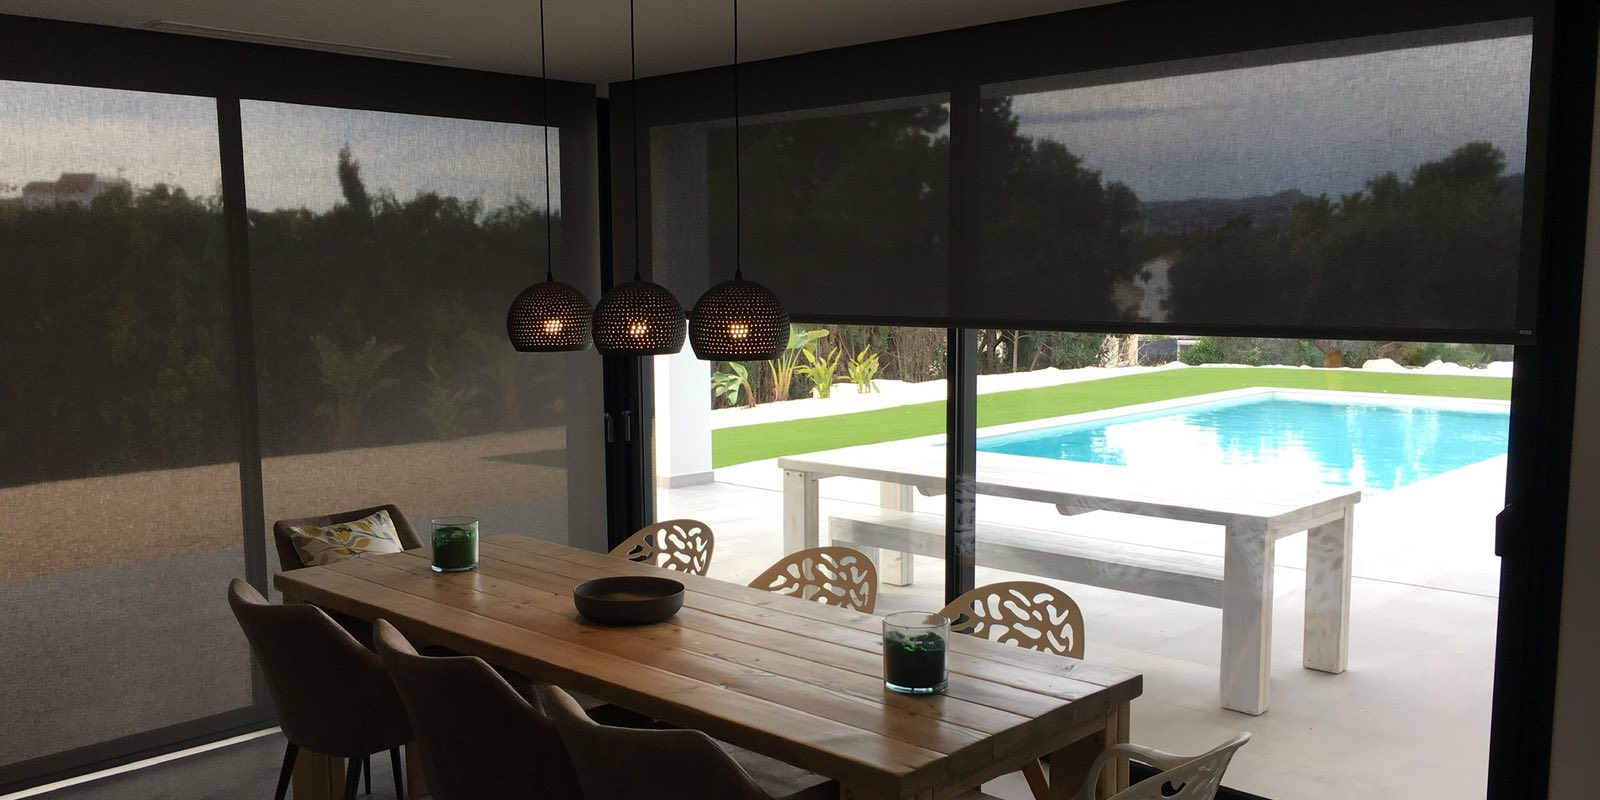 Polyscreen Roller Blinds in Javea